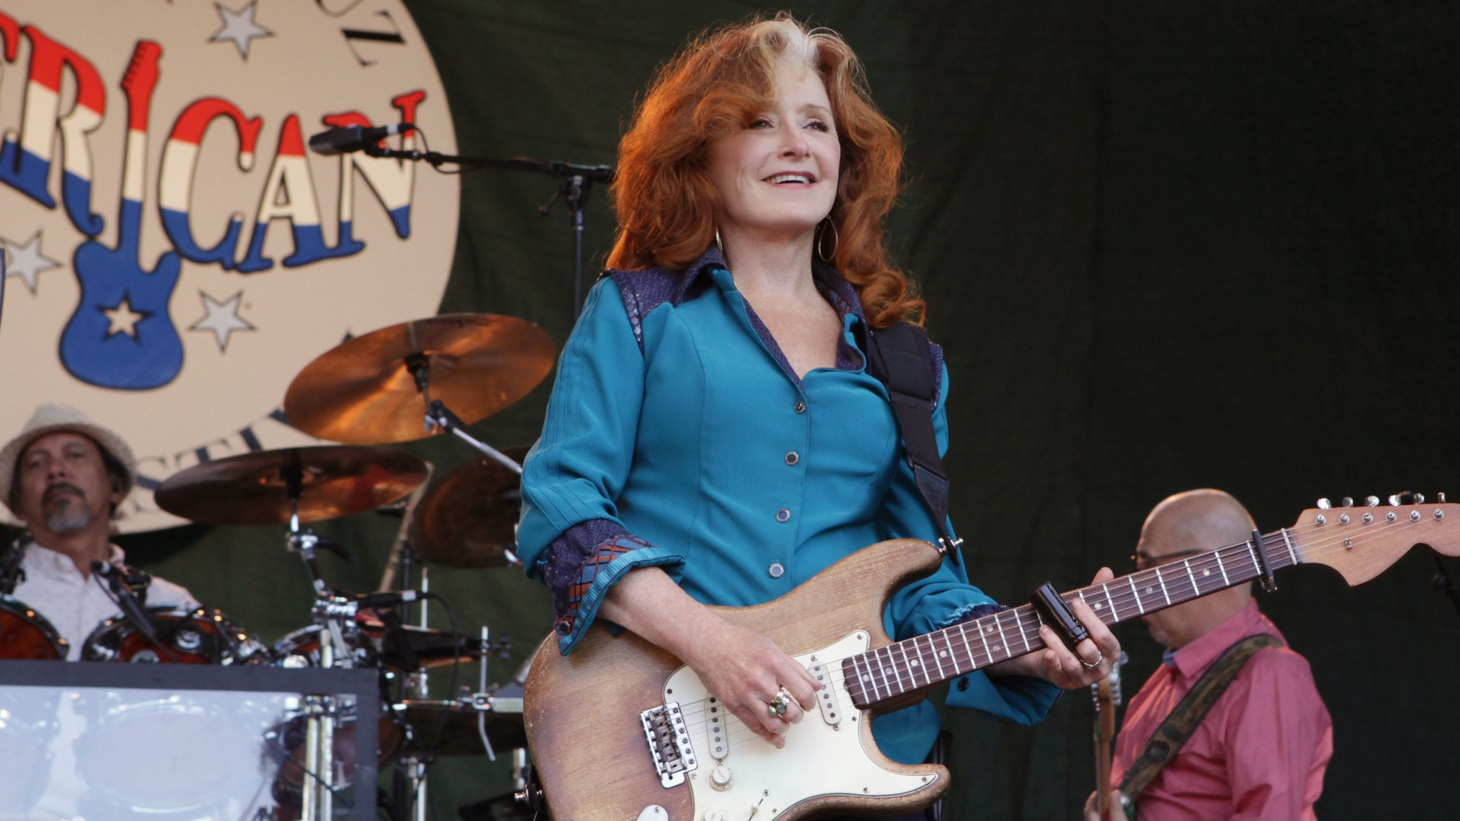 Rock and Roll Hall of Famer and 10-time Grammy Award-winner Bonnie Raitt is unbeatable when it comes to the Blues.